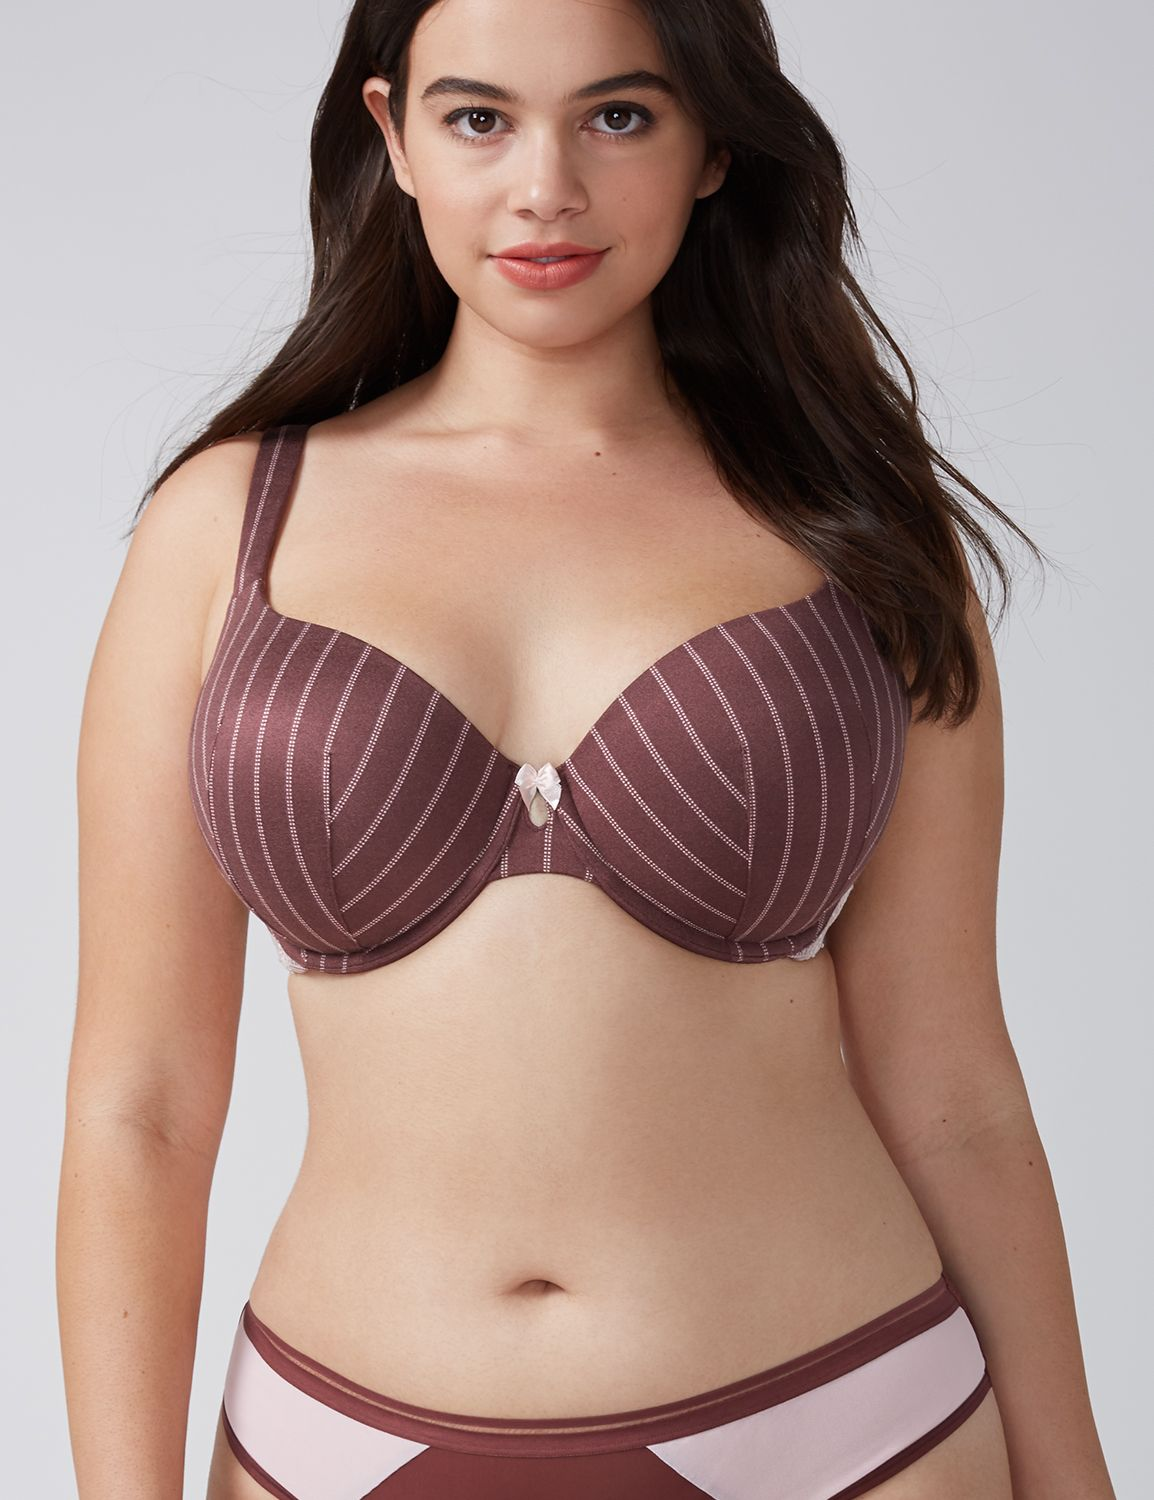 clearance cacique lingerie | plus size bras & panties sale | lane bryant